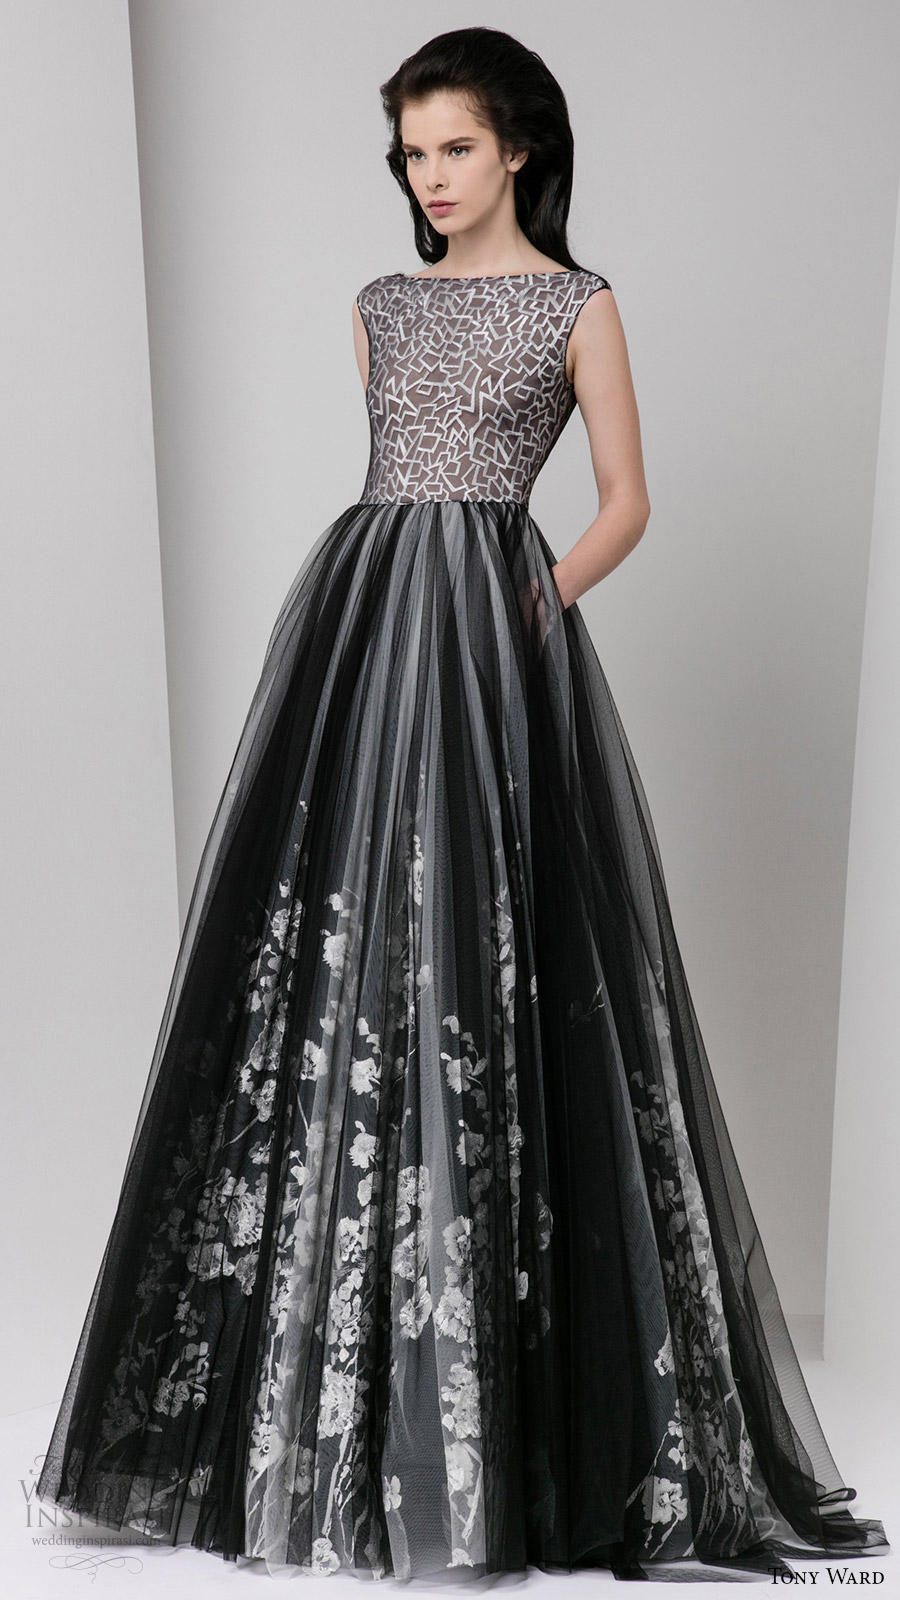 tony ward fall 2016 rtw cap sleeves illusion bateau neck bodice ball gown skirt pockets evening dress black